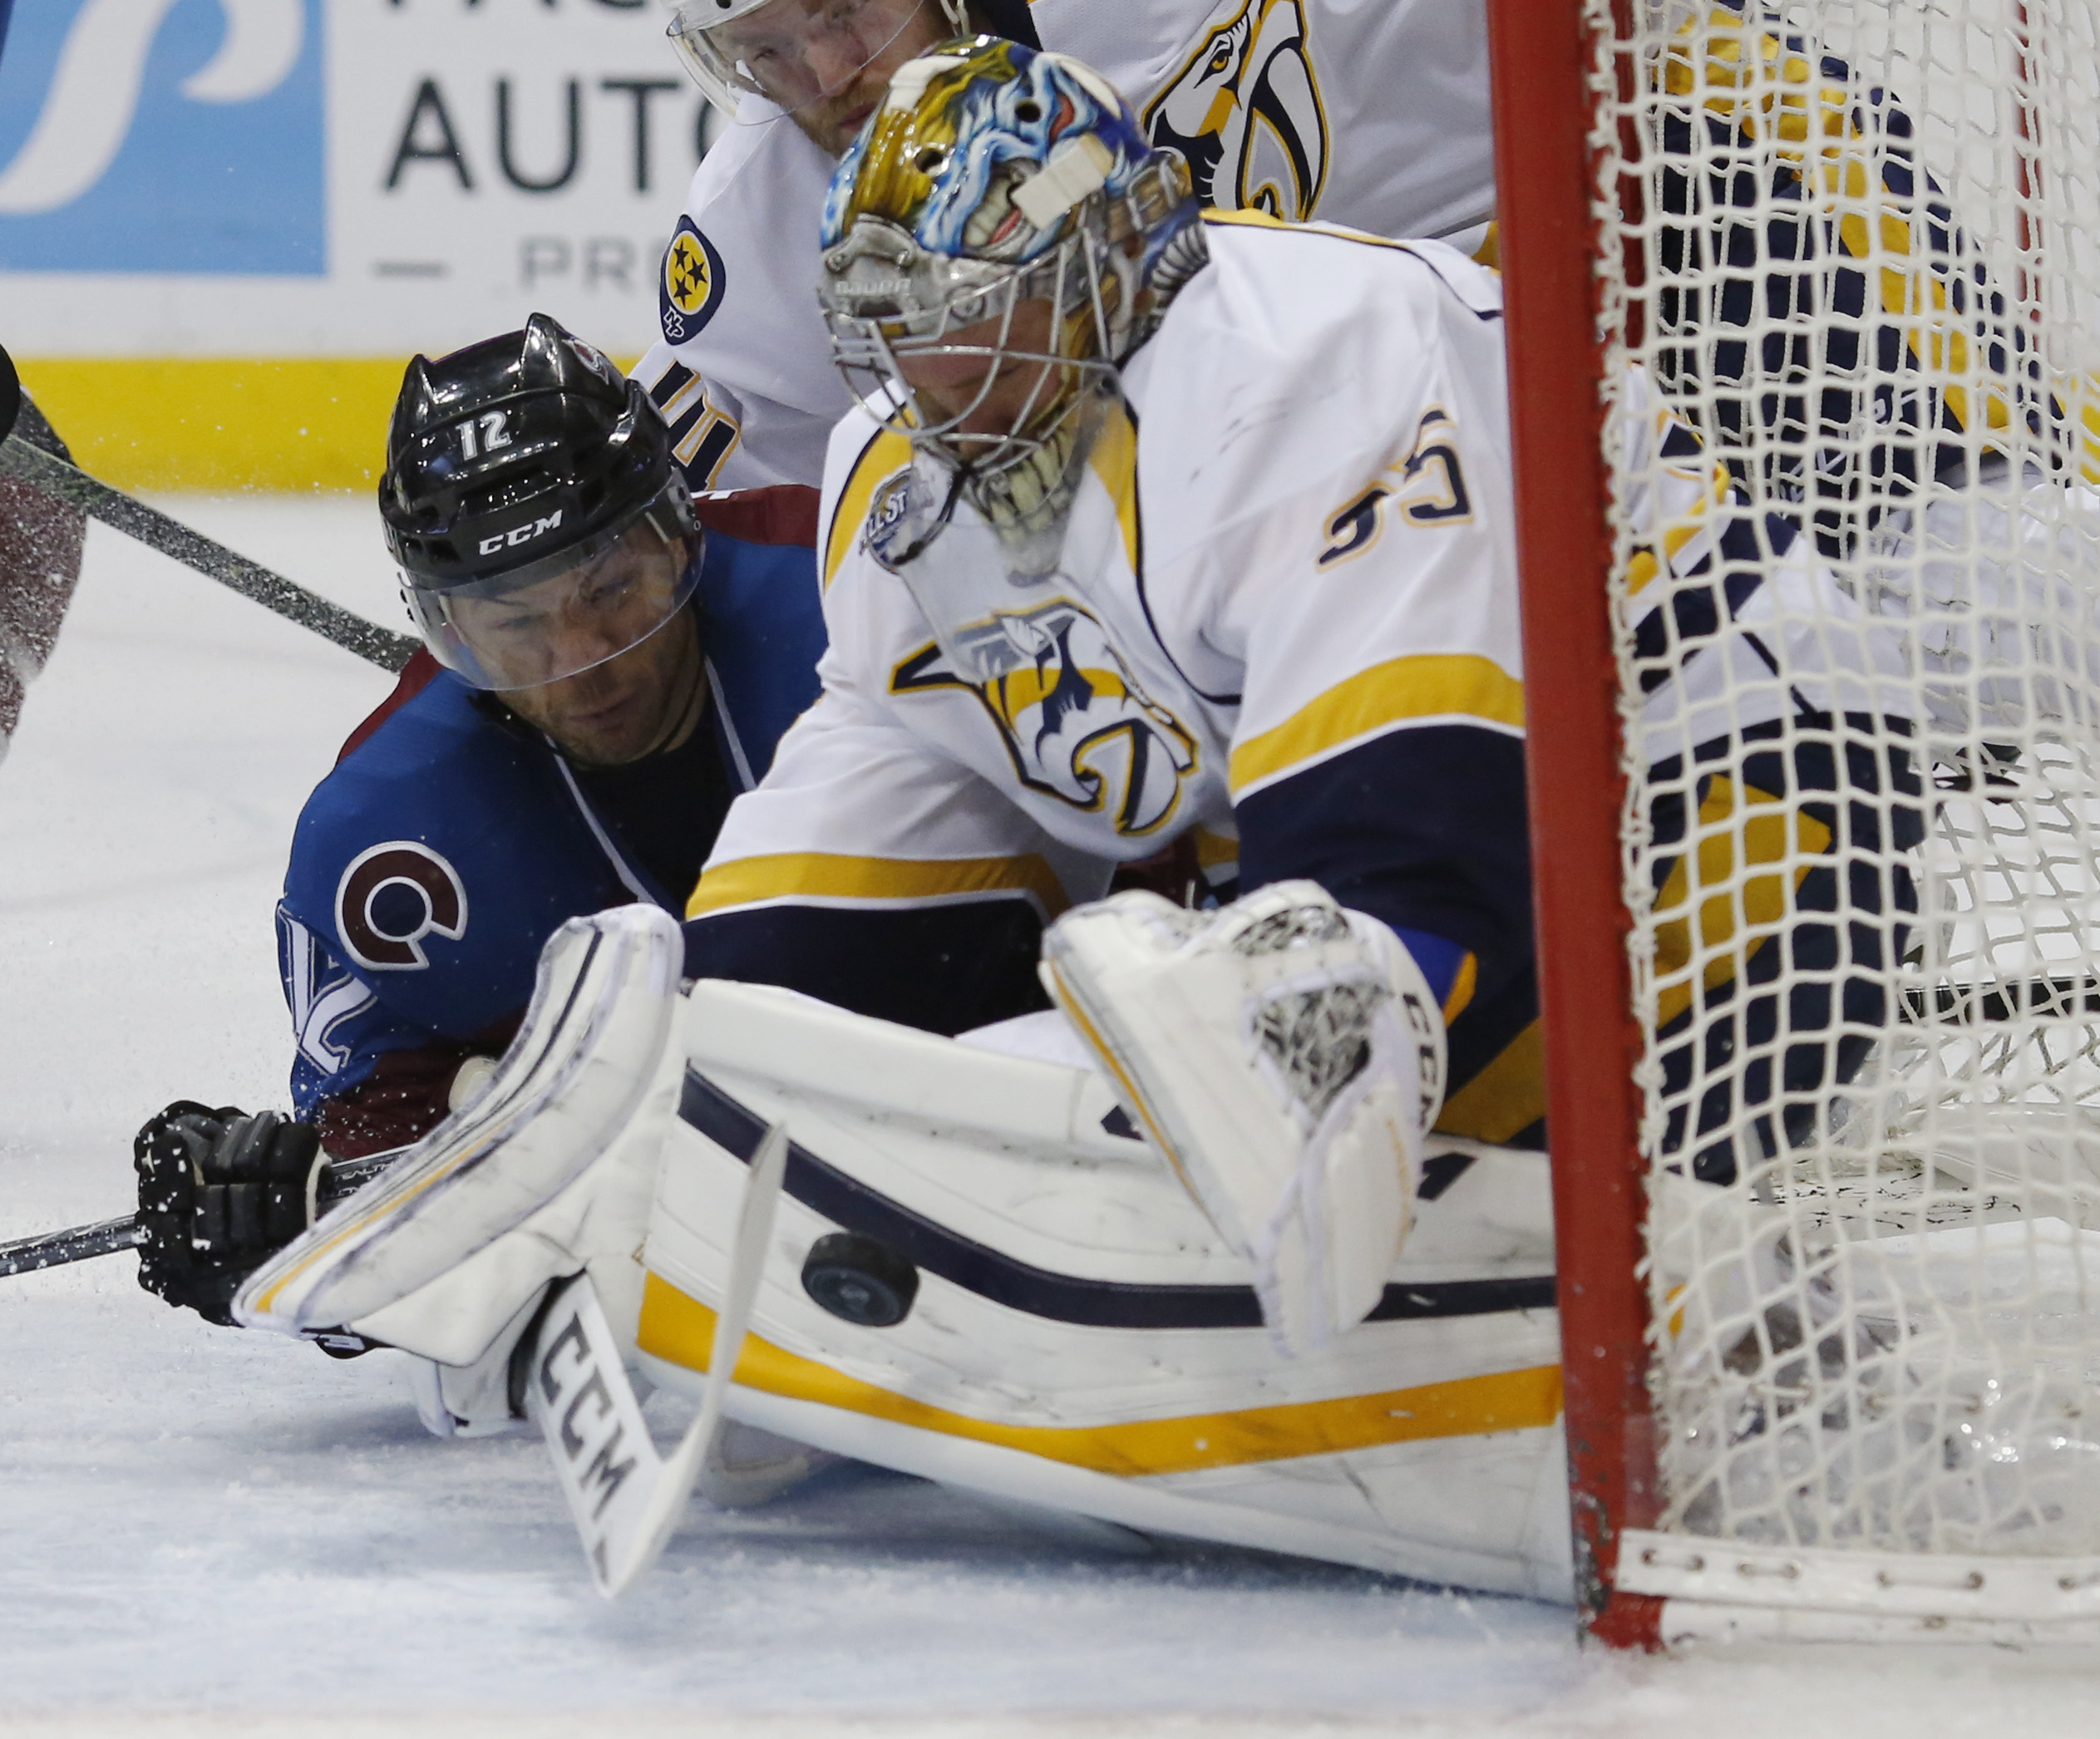 Nashville Predators goalie Pekka Rinne, front, of Finland, reaches out to stop a shot off the stick of Colorado Avalanche right wing Jarome Iginla in the third period of an NHL hockey game Saturday, March 5, 2016, in Denver. Nashville won 5-2. (AP Photo/D